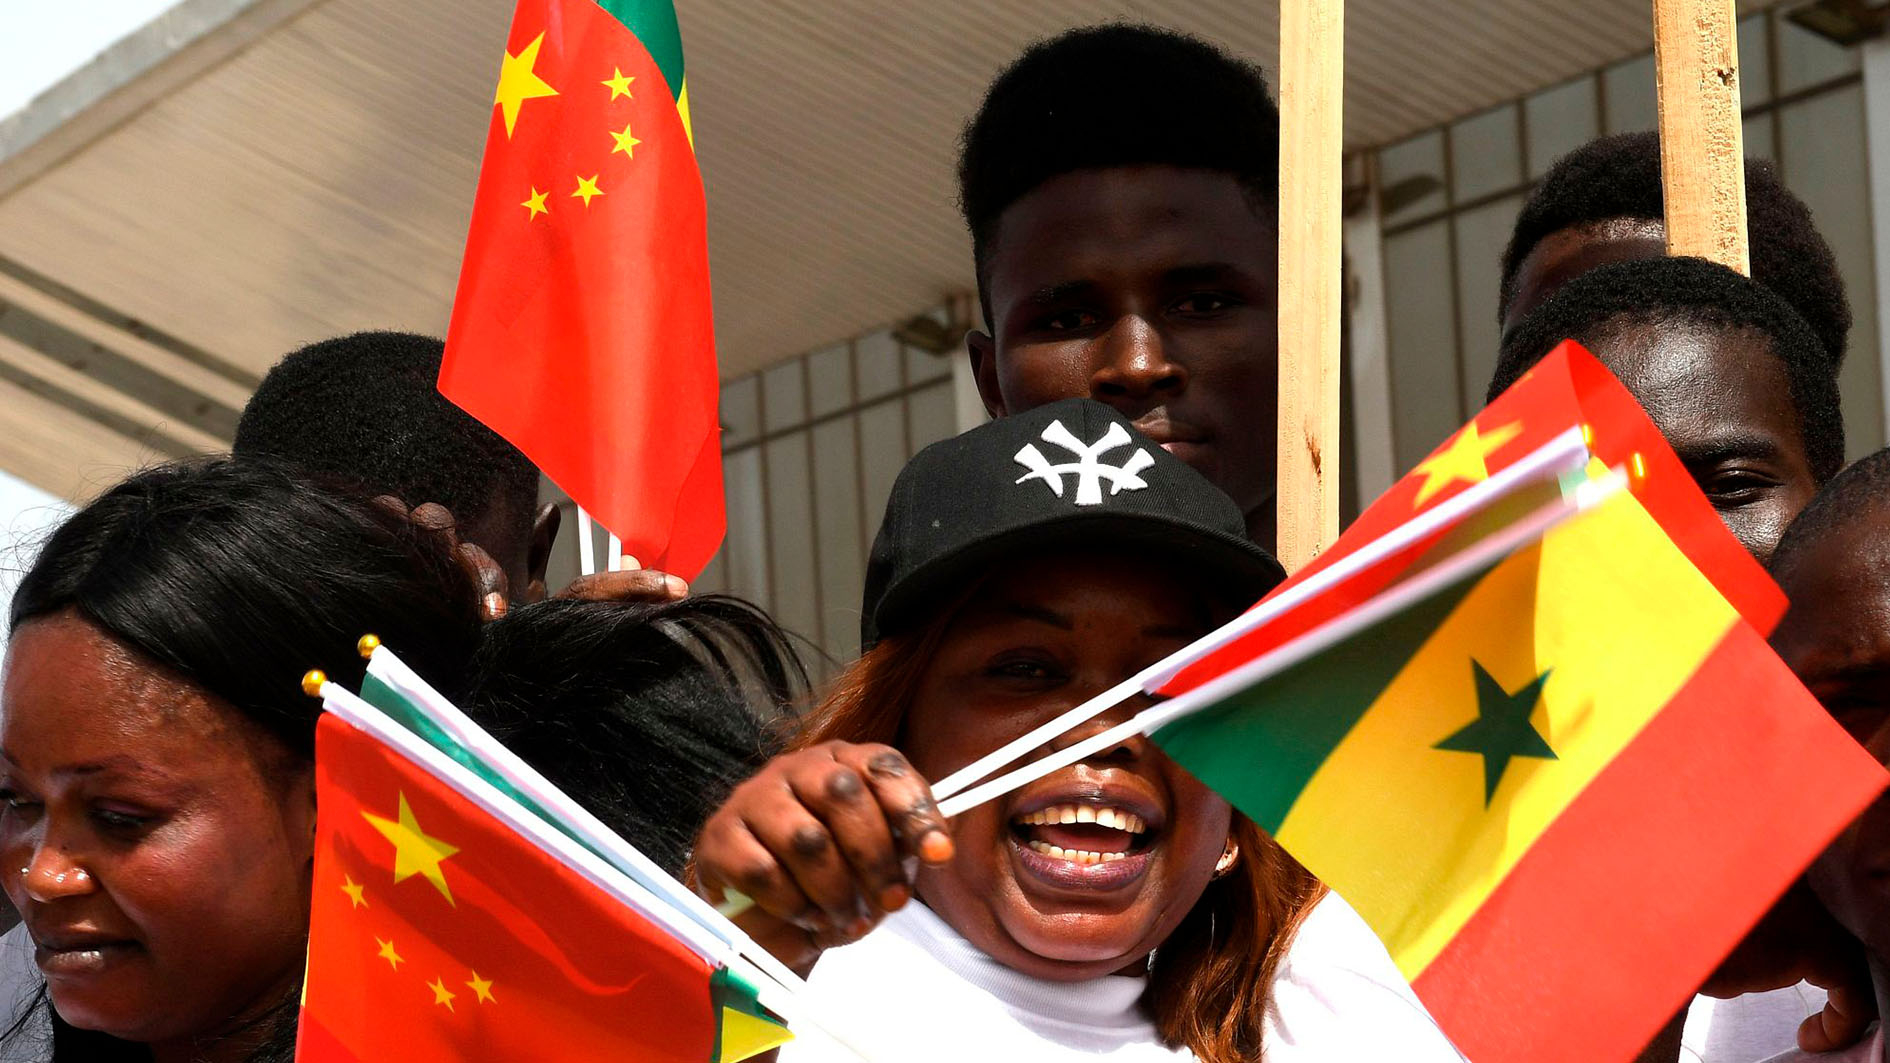 Senegal to further facilitate convergence of views between Africa, China: FM